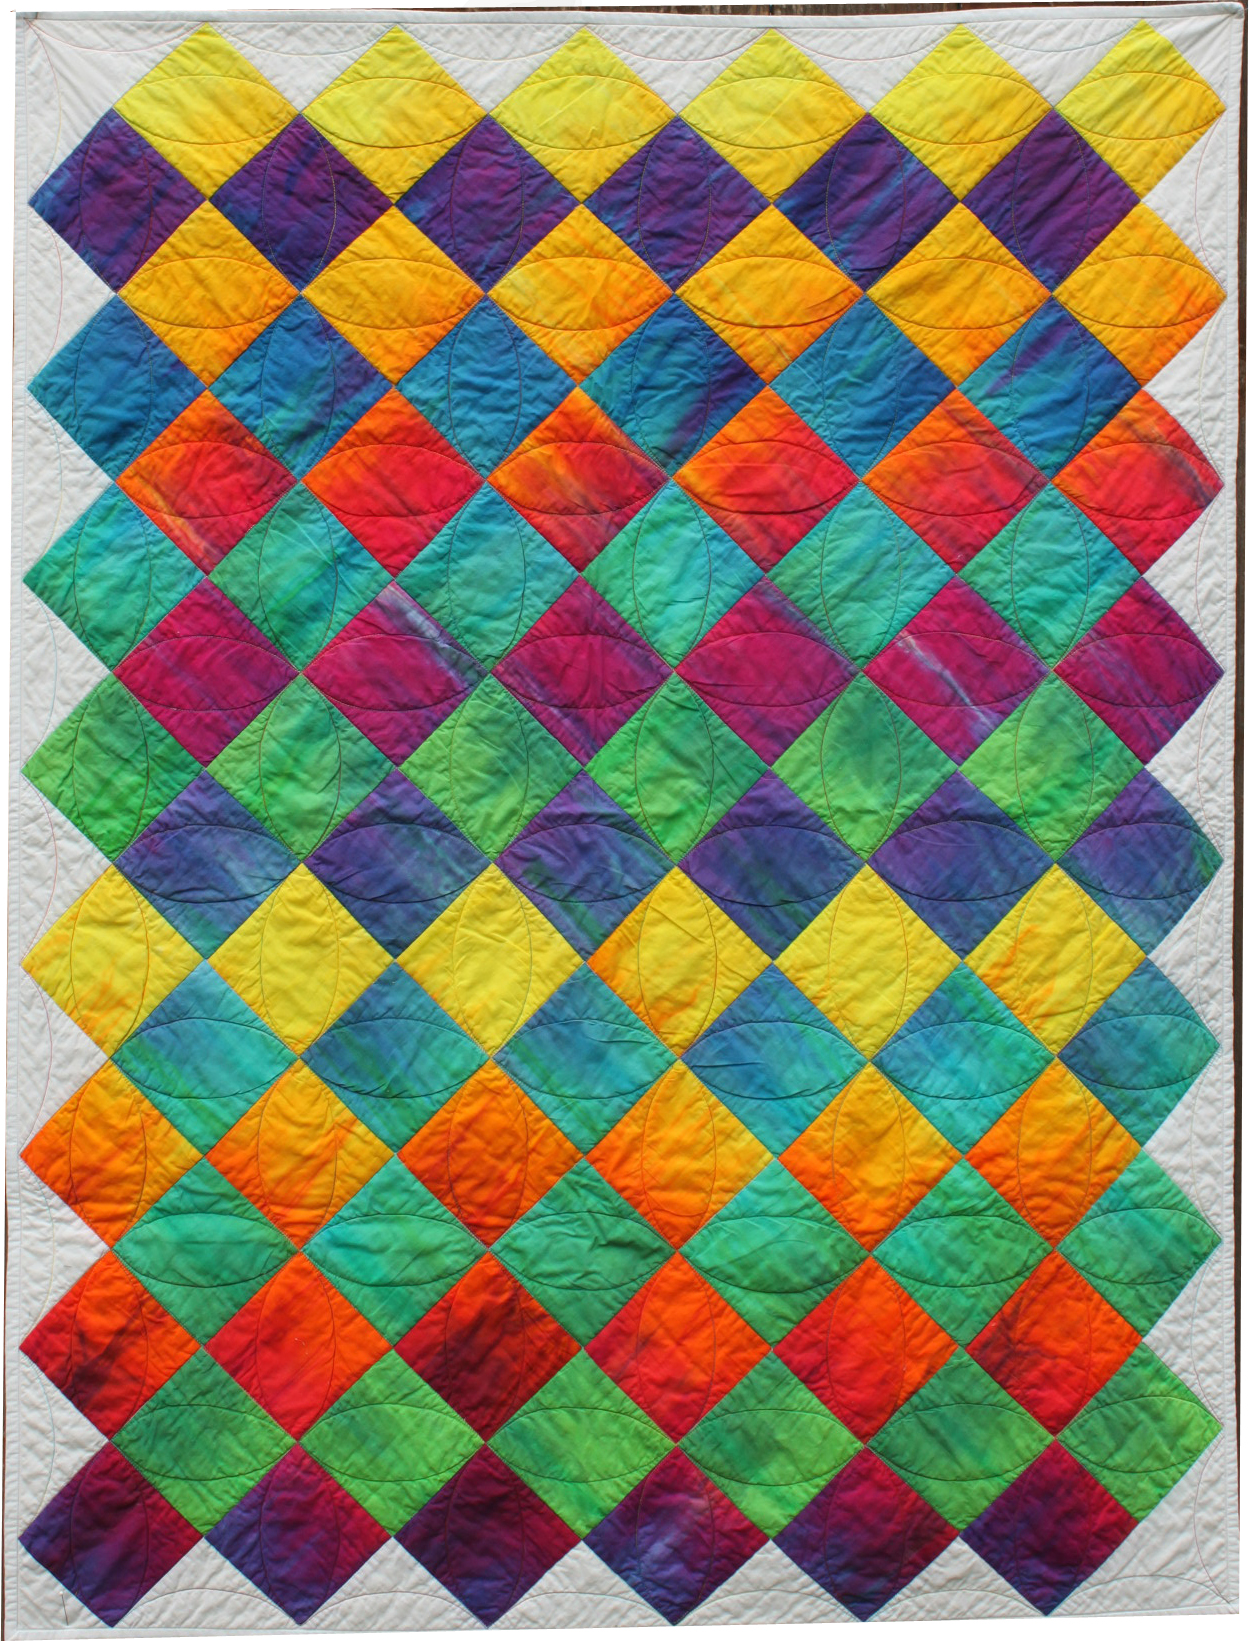 Learn how to make and quilt this easy Rainbow crib quilt.